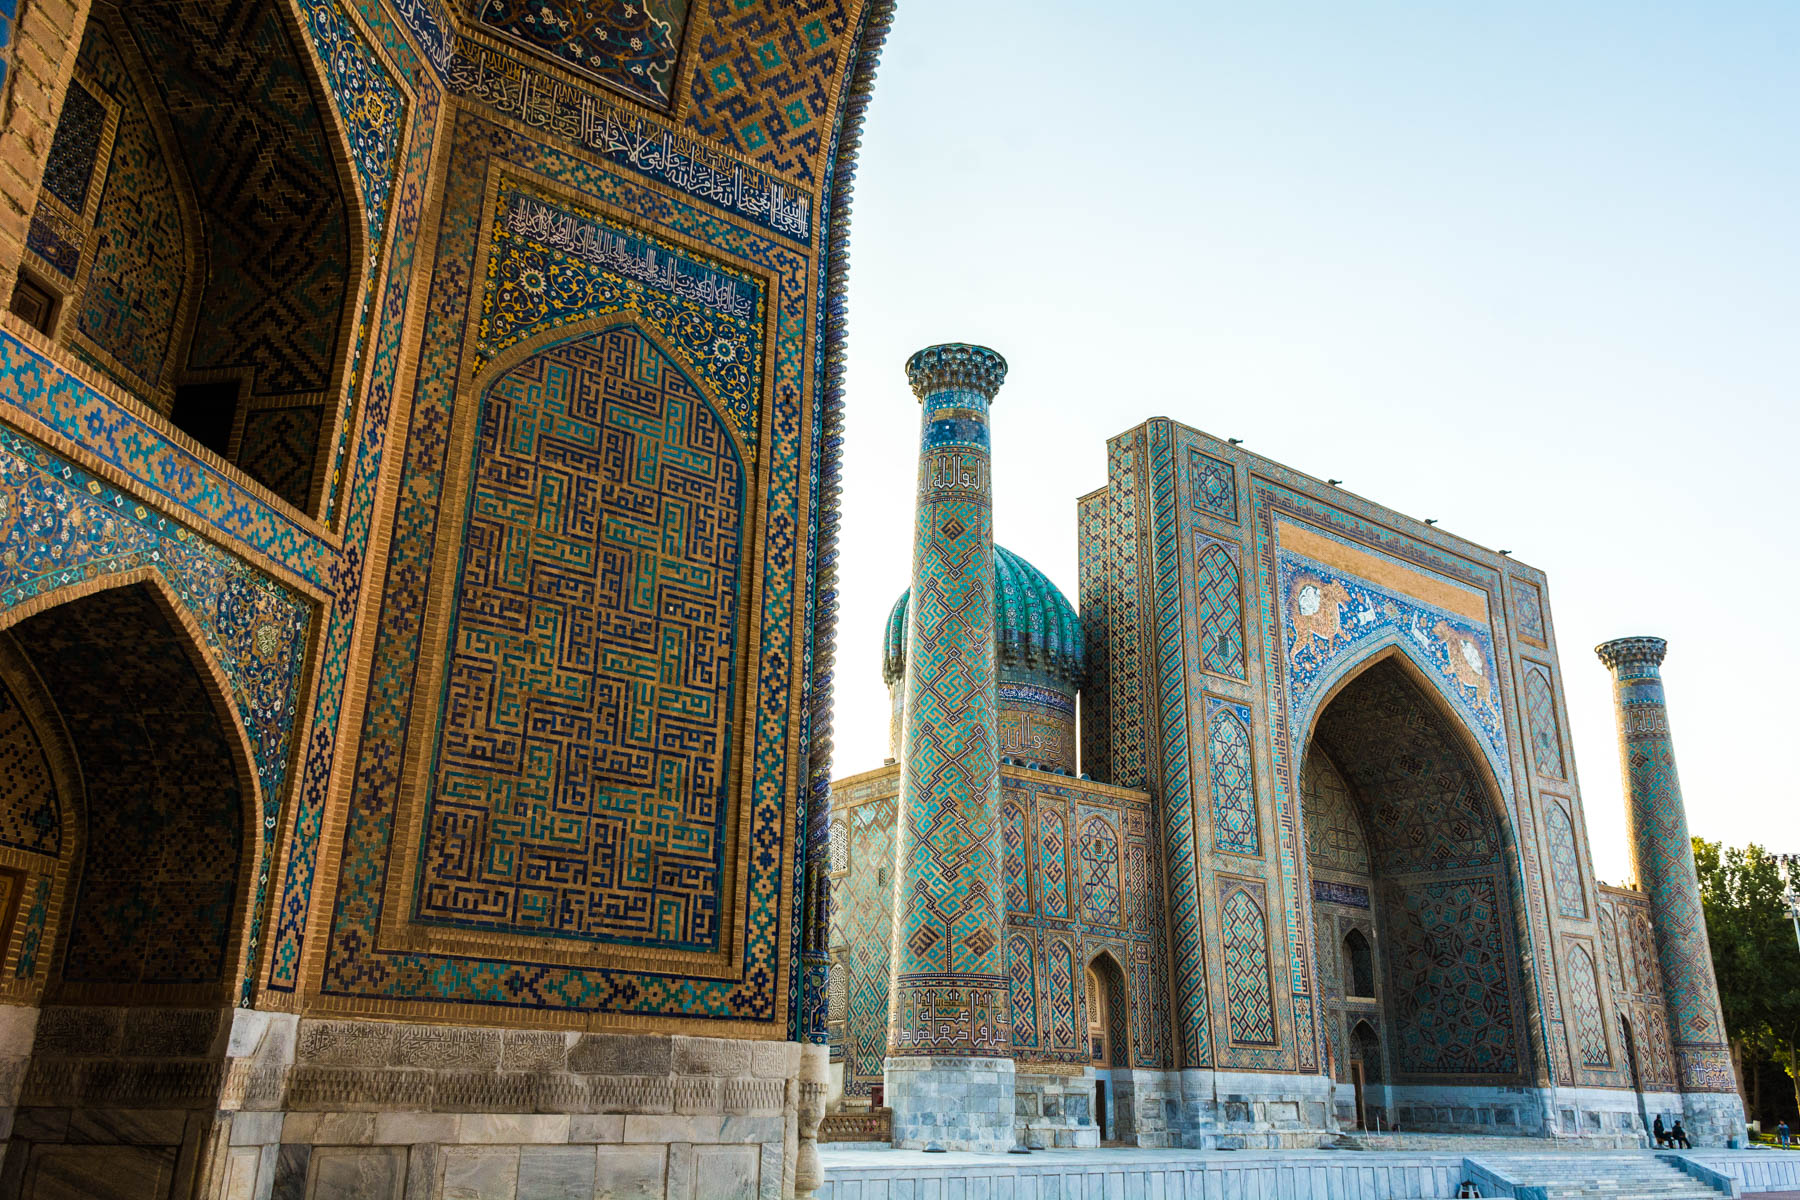 Sunrise in Samarkand, Uzbekistan - Lost With Purpose